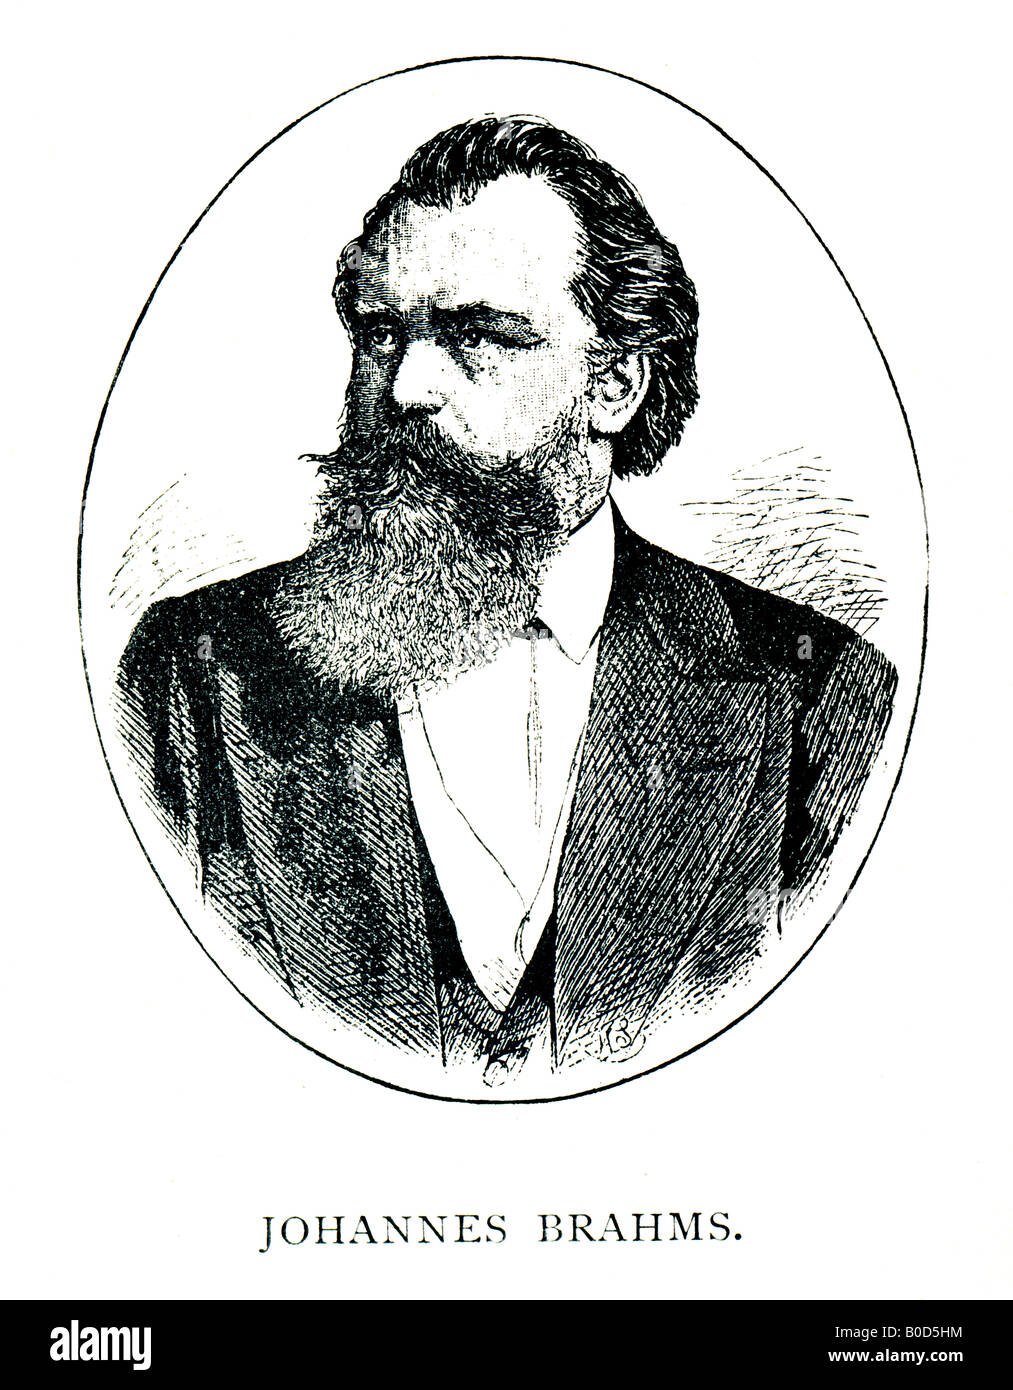 Victorian Steel Engraved  1892 Print of Johannes Brahms Musical Composer FOR EDITORIAL USE ONLY - Stock Image